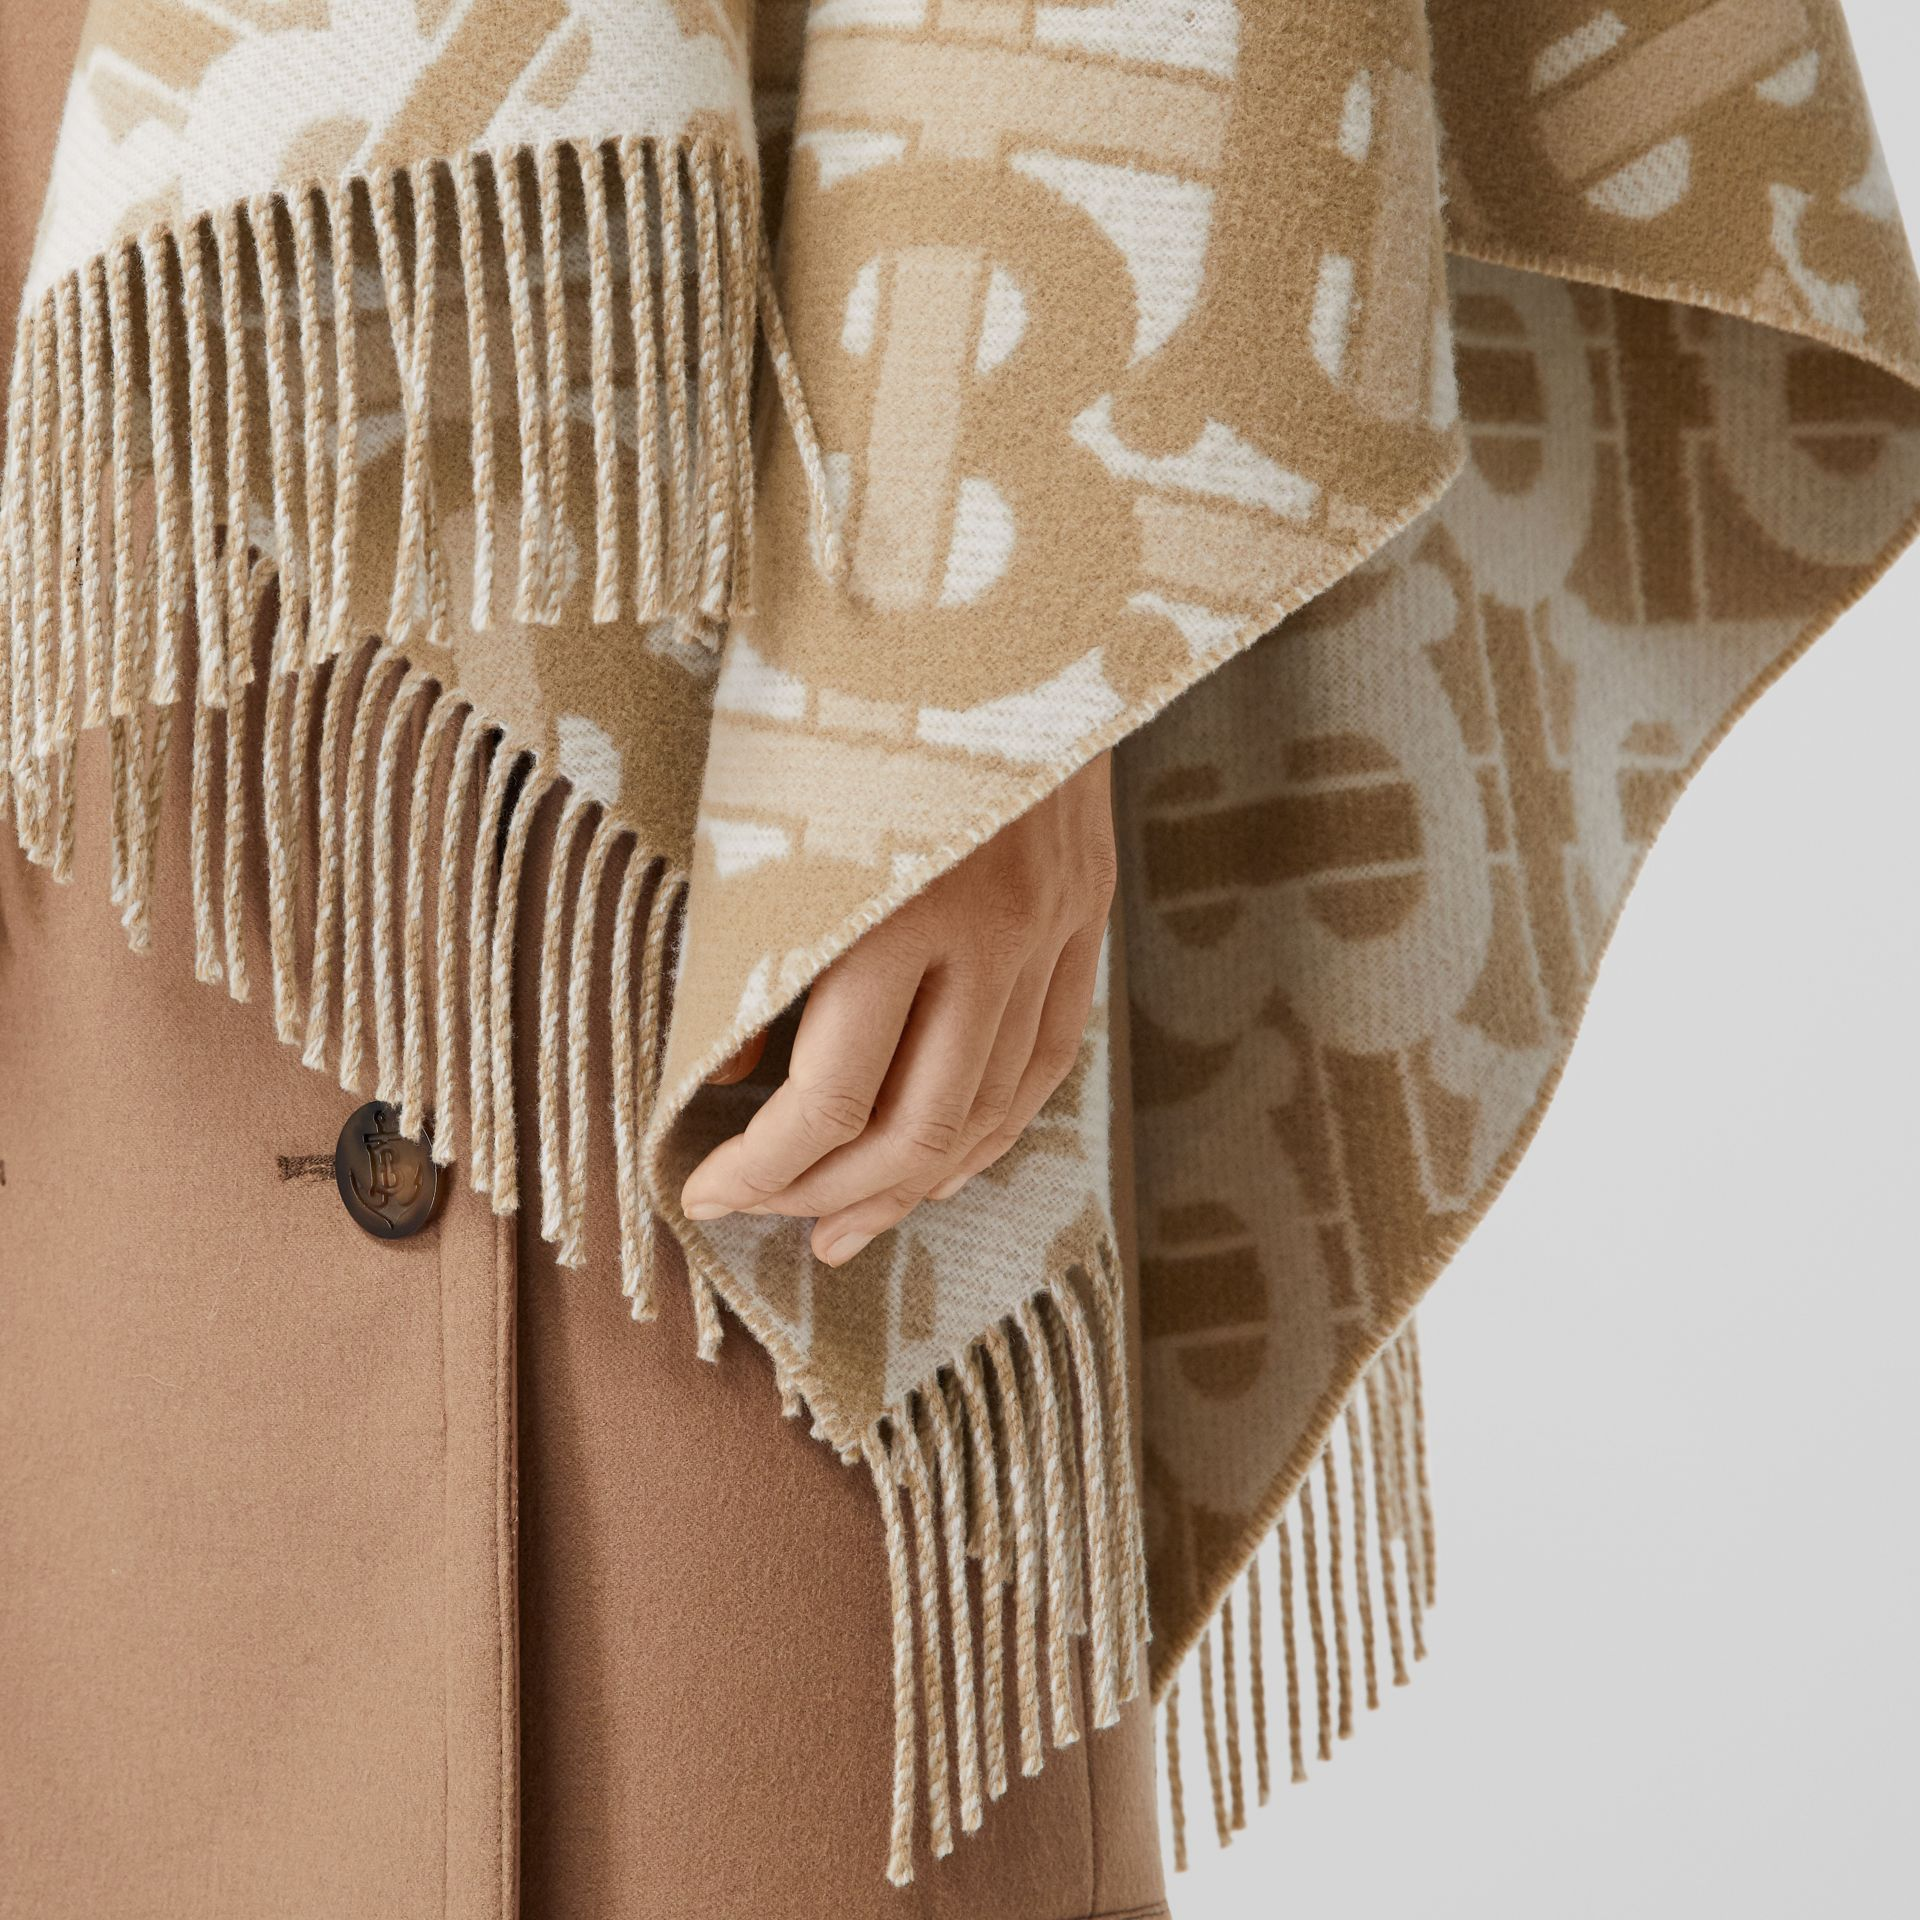 Monogram Merino Wool Cashmere Jacquard Cape in Light Sand - Women | Burberry - gallery image 1